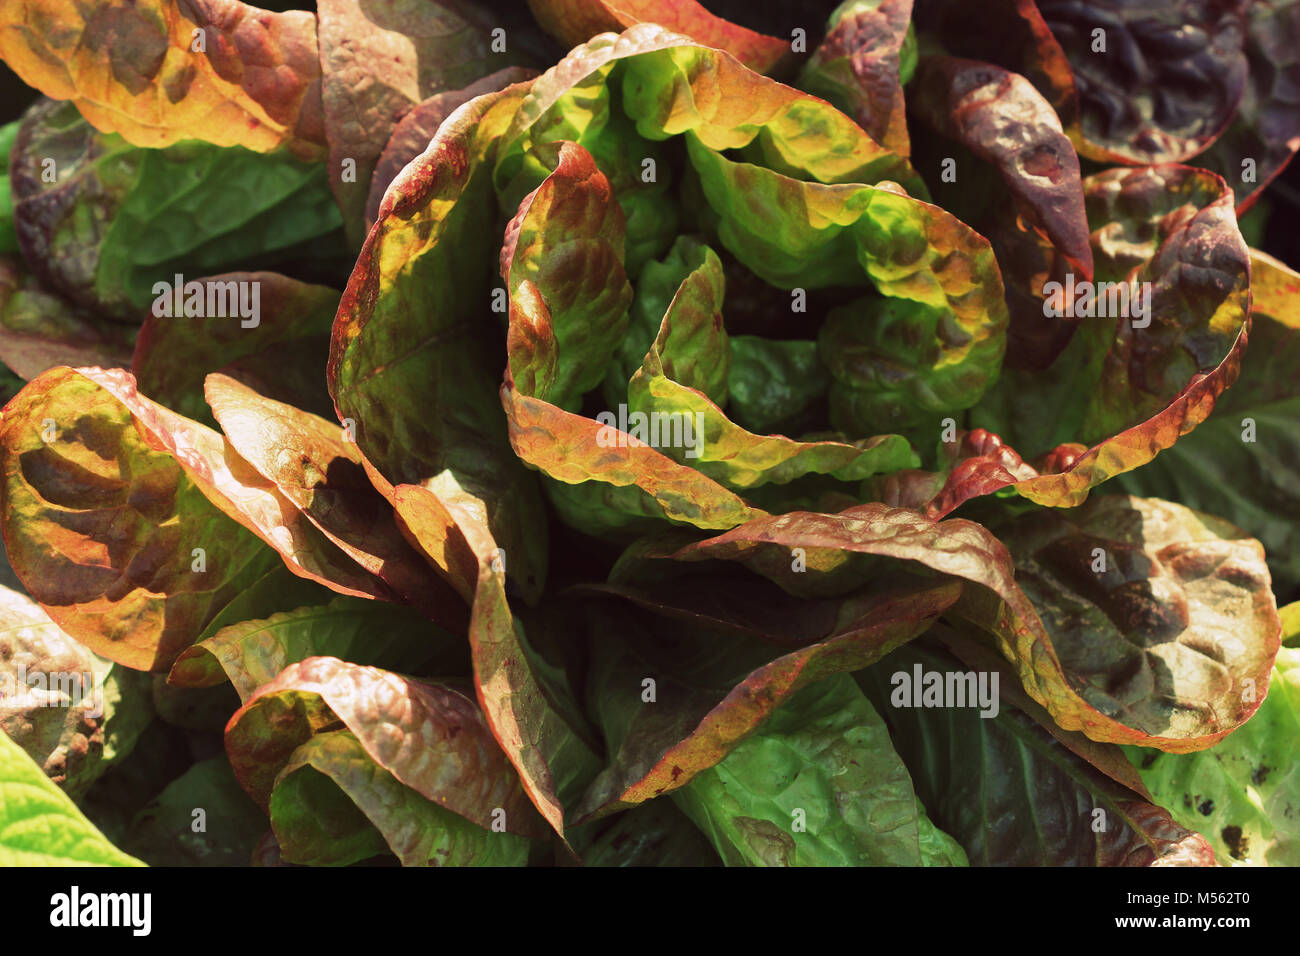 Red Cabbage Growing In Garden Stock Photos & Red Cabbage Growing In ...